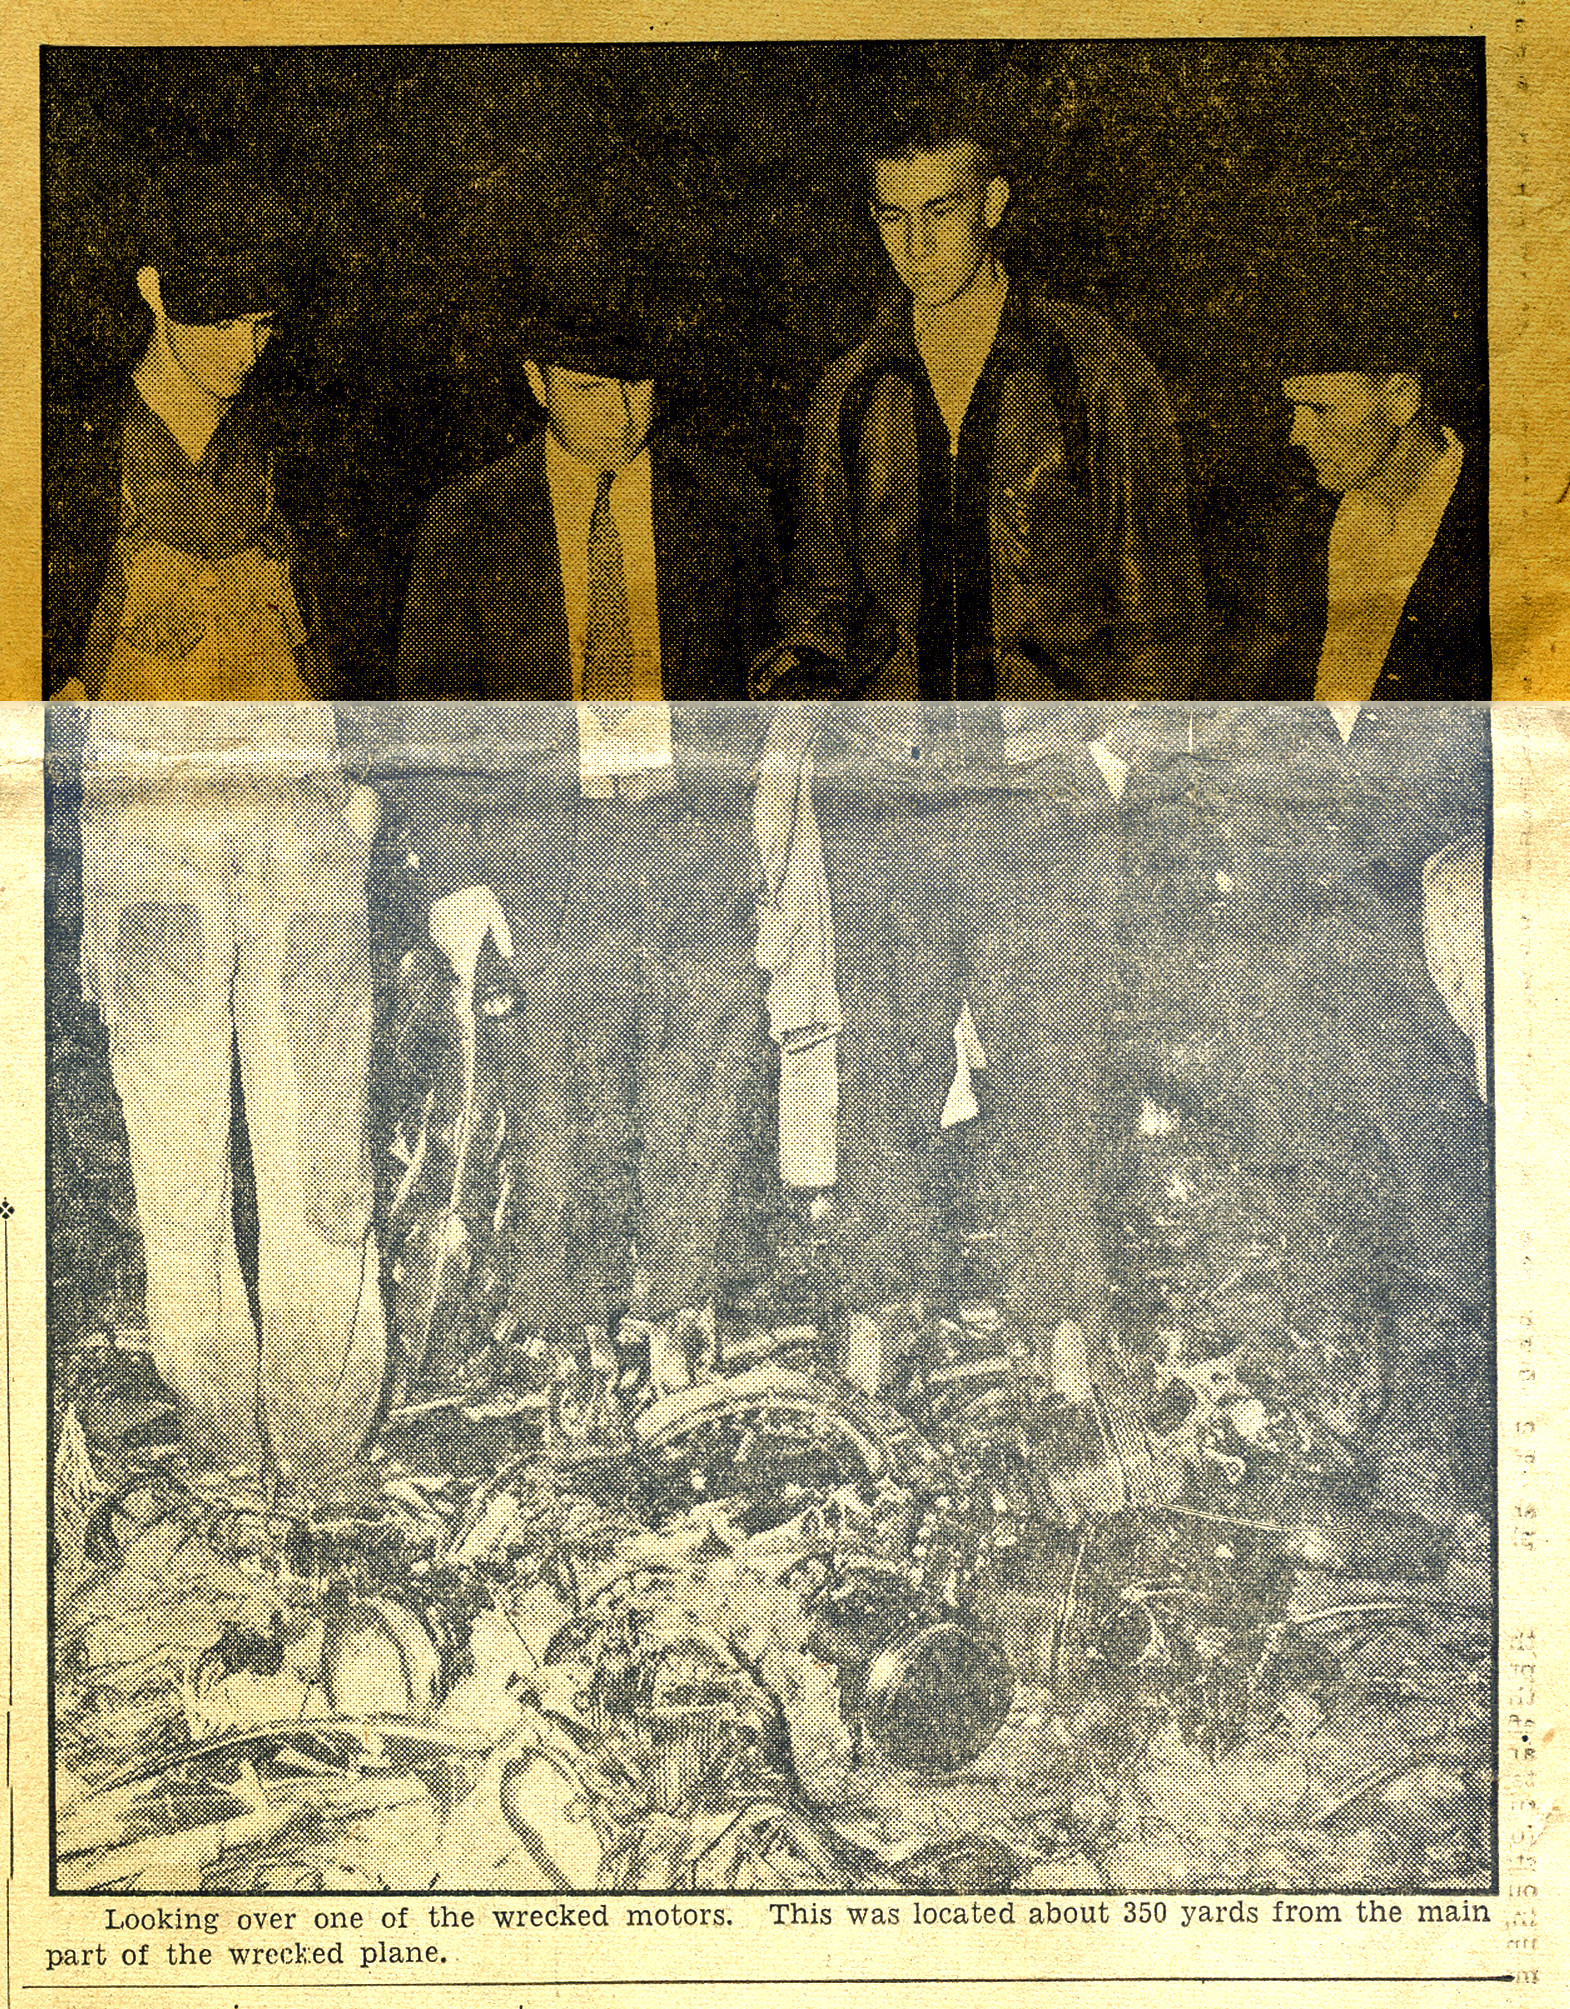 1940-09-01-spectators-look-at-wrecked-motor_washington-star-page-a3